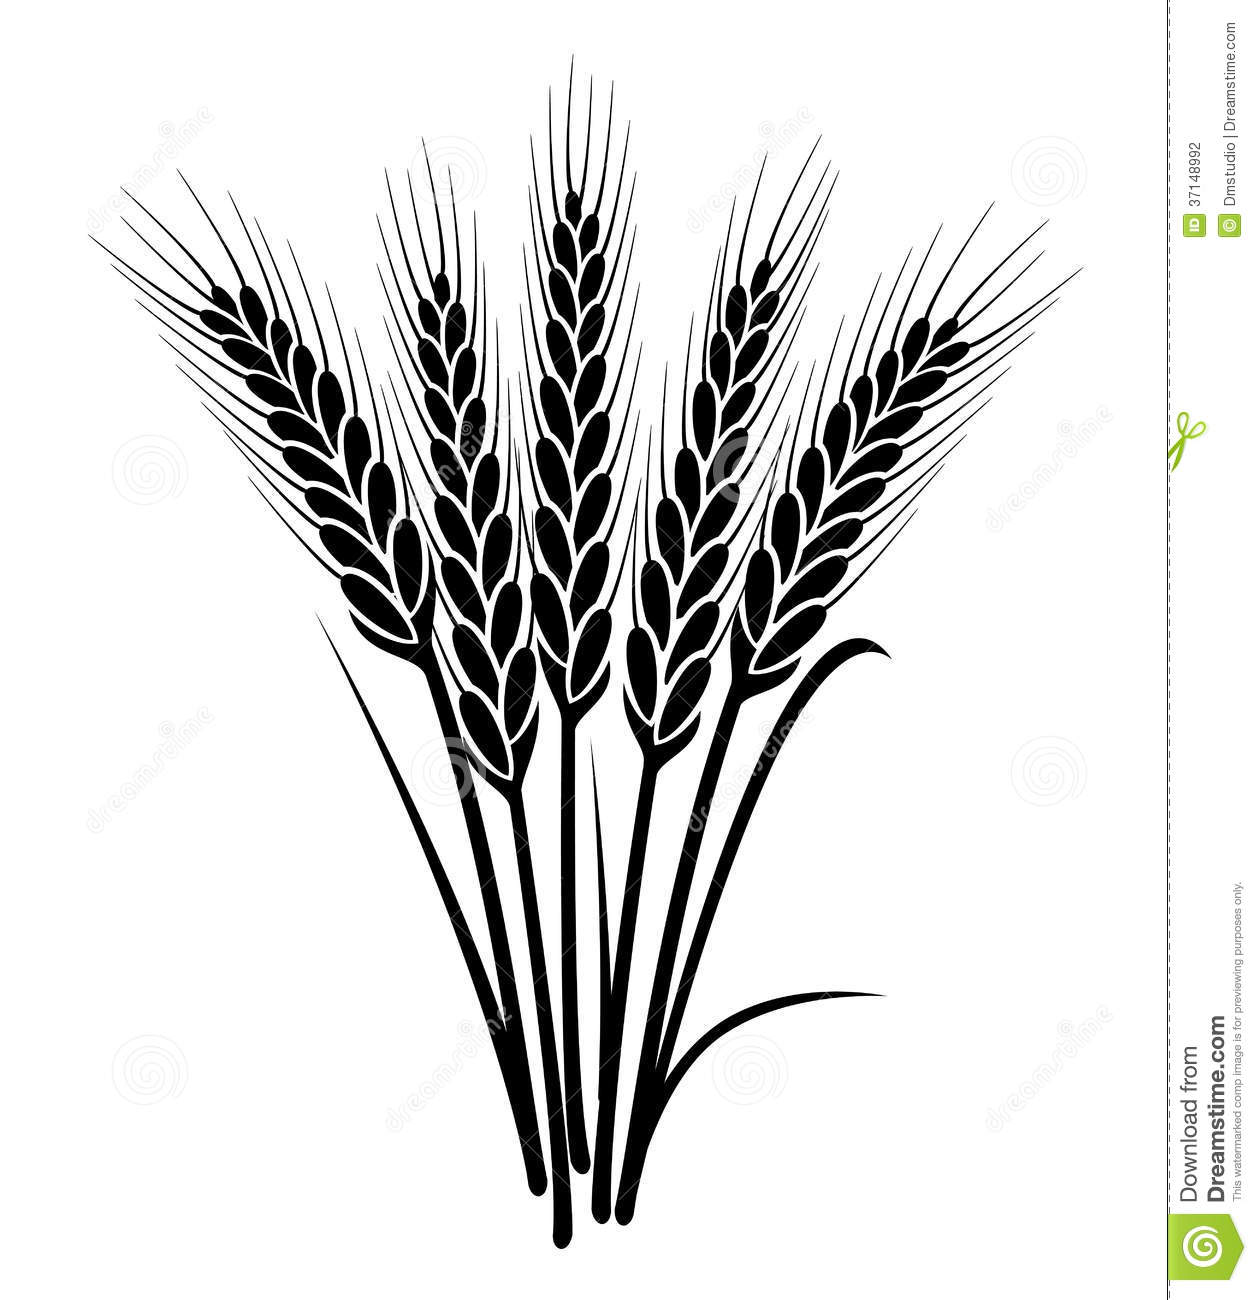 Vector Bunch Of Wheat Ears Stock Vector Illustration Of